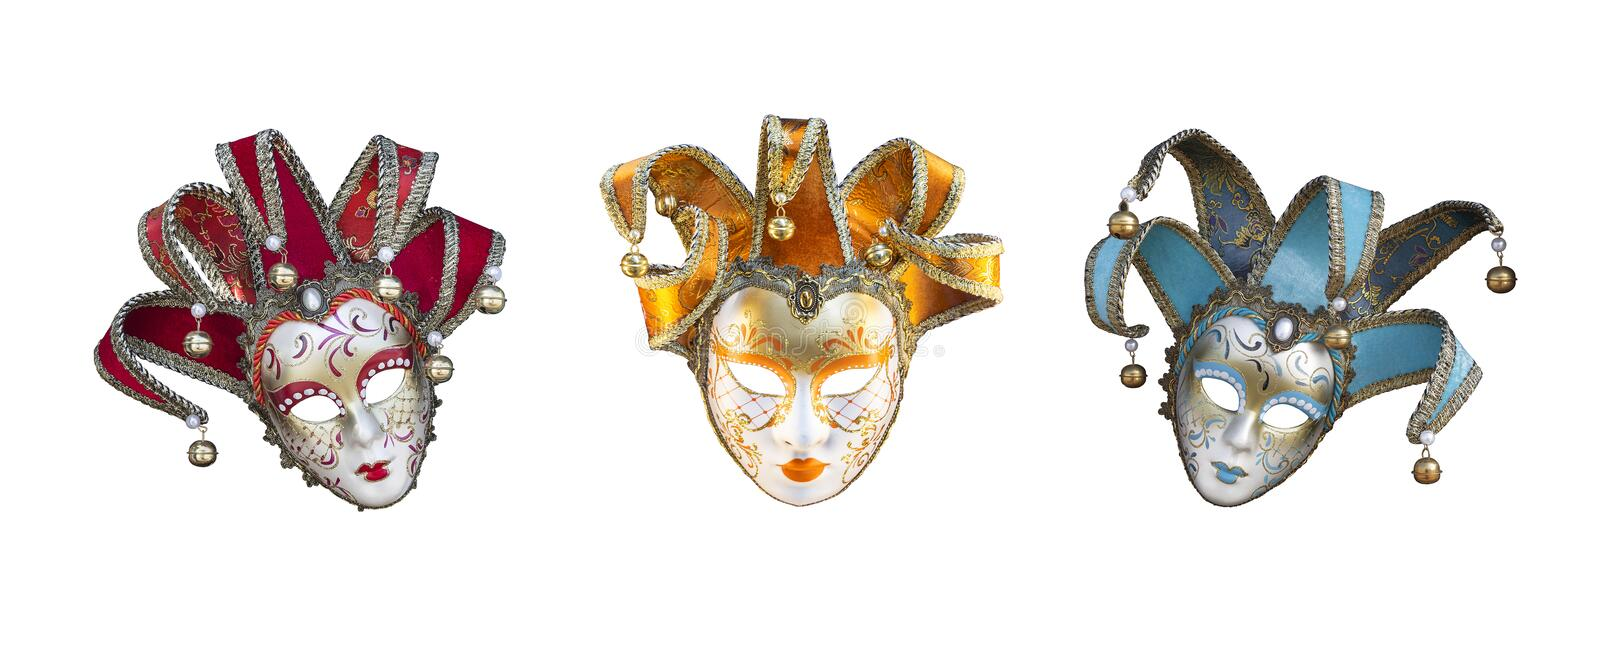 Colorful Venetian carnival mask on white background isolated closeup royalty free stock images